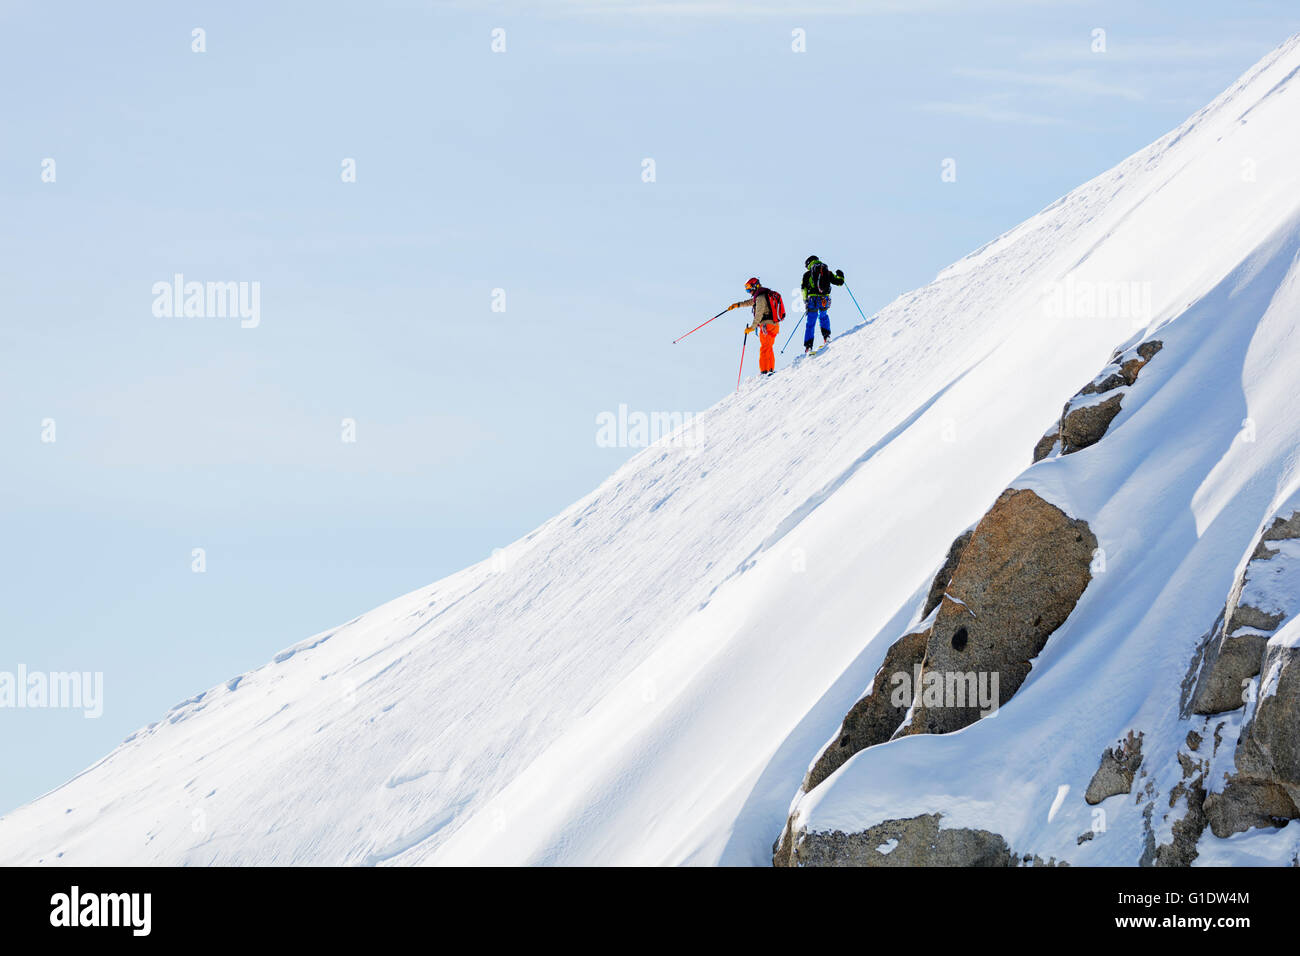 Europe, France, Haute Savoie, Rhone Alps, Chamonix, skier on the Vallee Blanche off piste Stock Photo